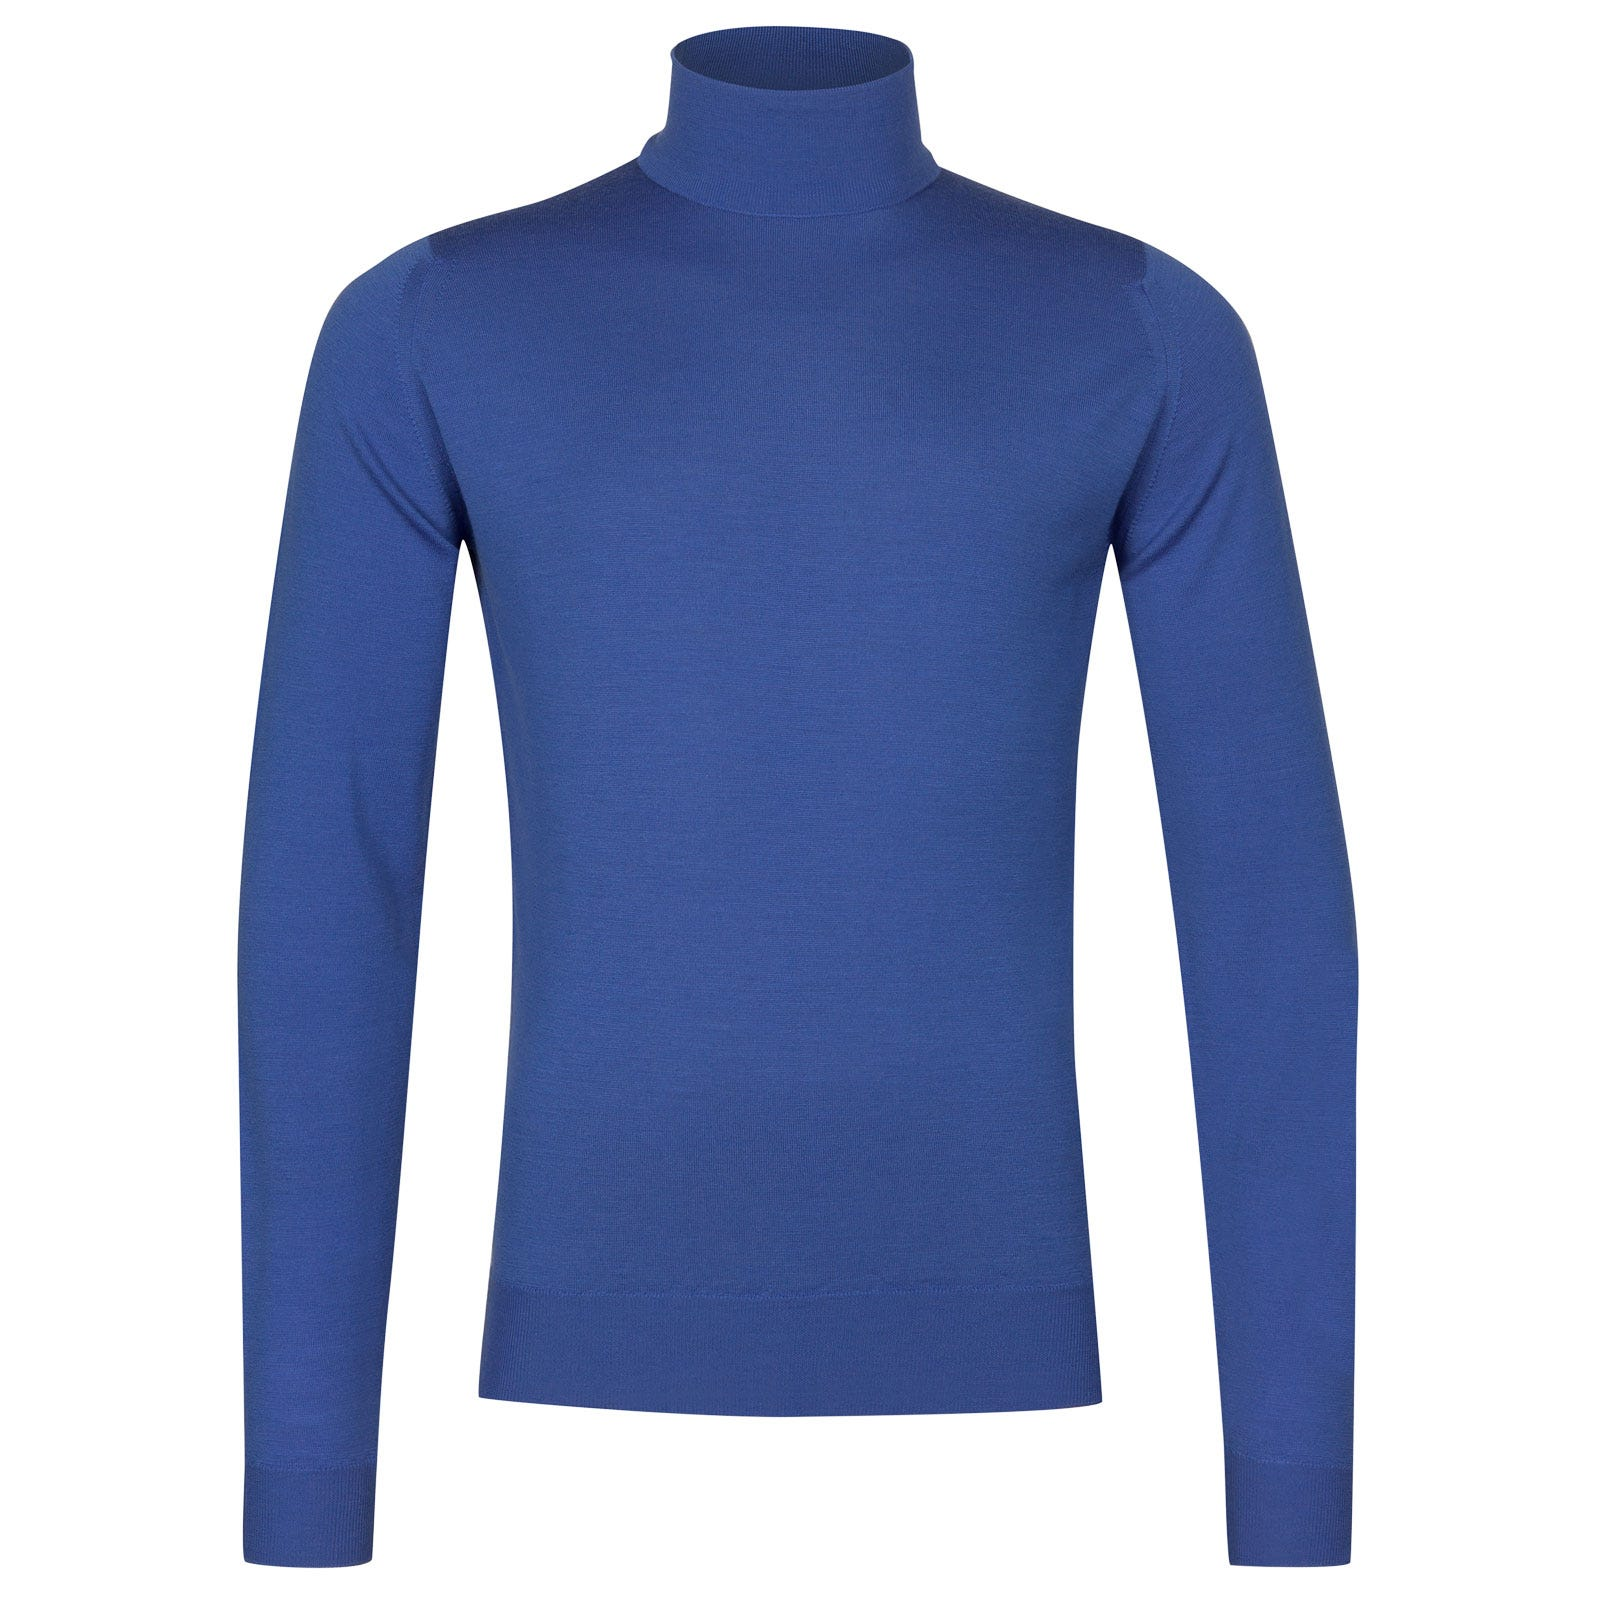 John Smedley Cherwell Merino Wool Pullover in Chambray Blue-L